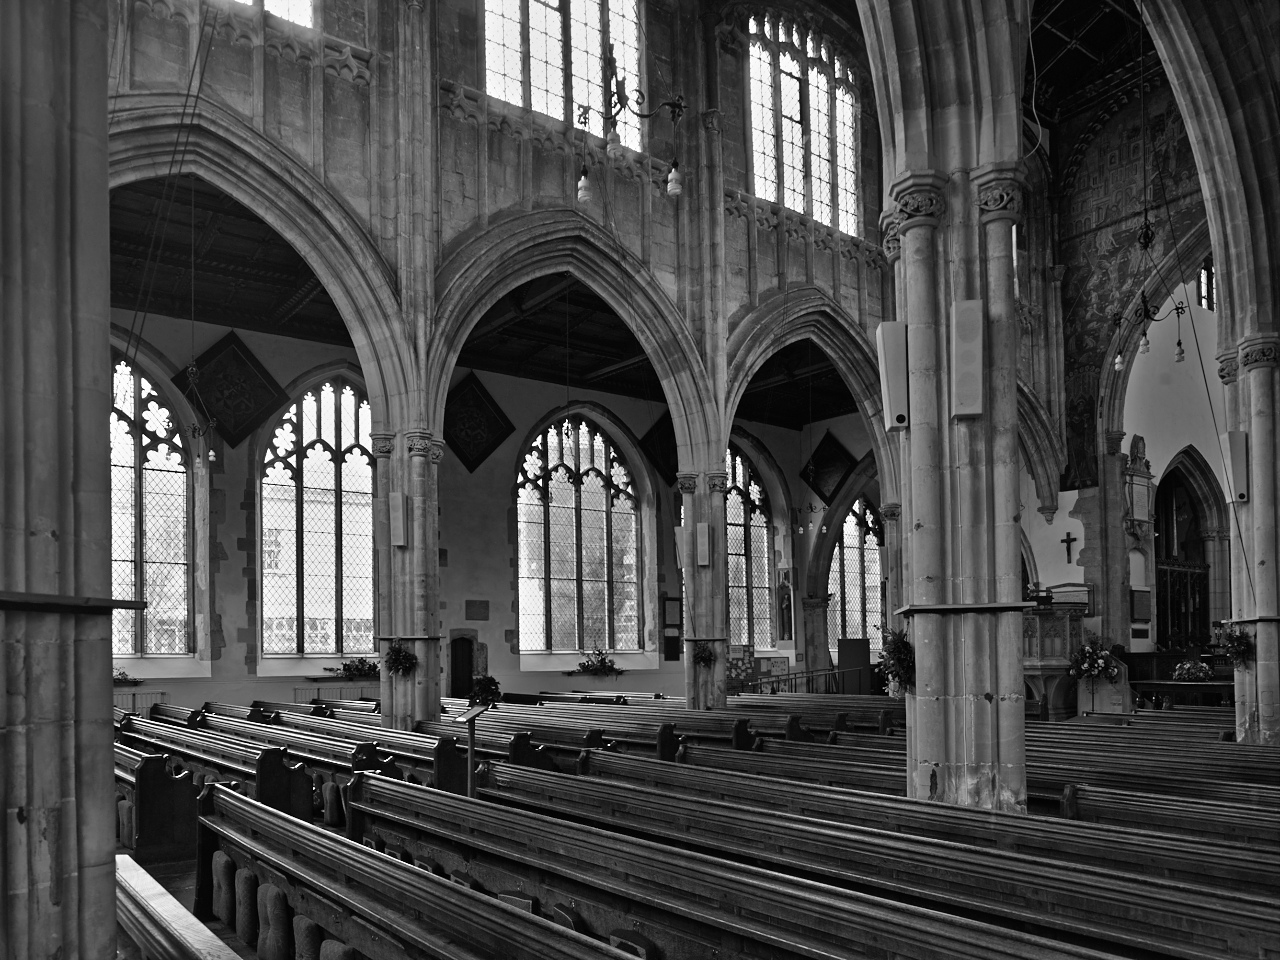 St Thomas And St Edmund's Church, Salisbury, England by jctodd in Regular Member Gallery